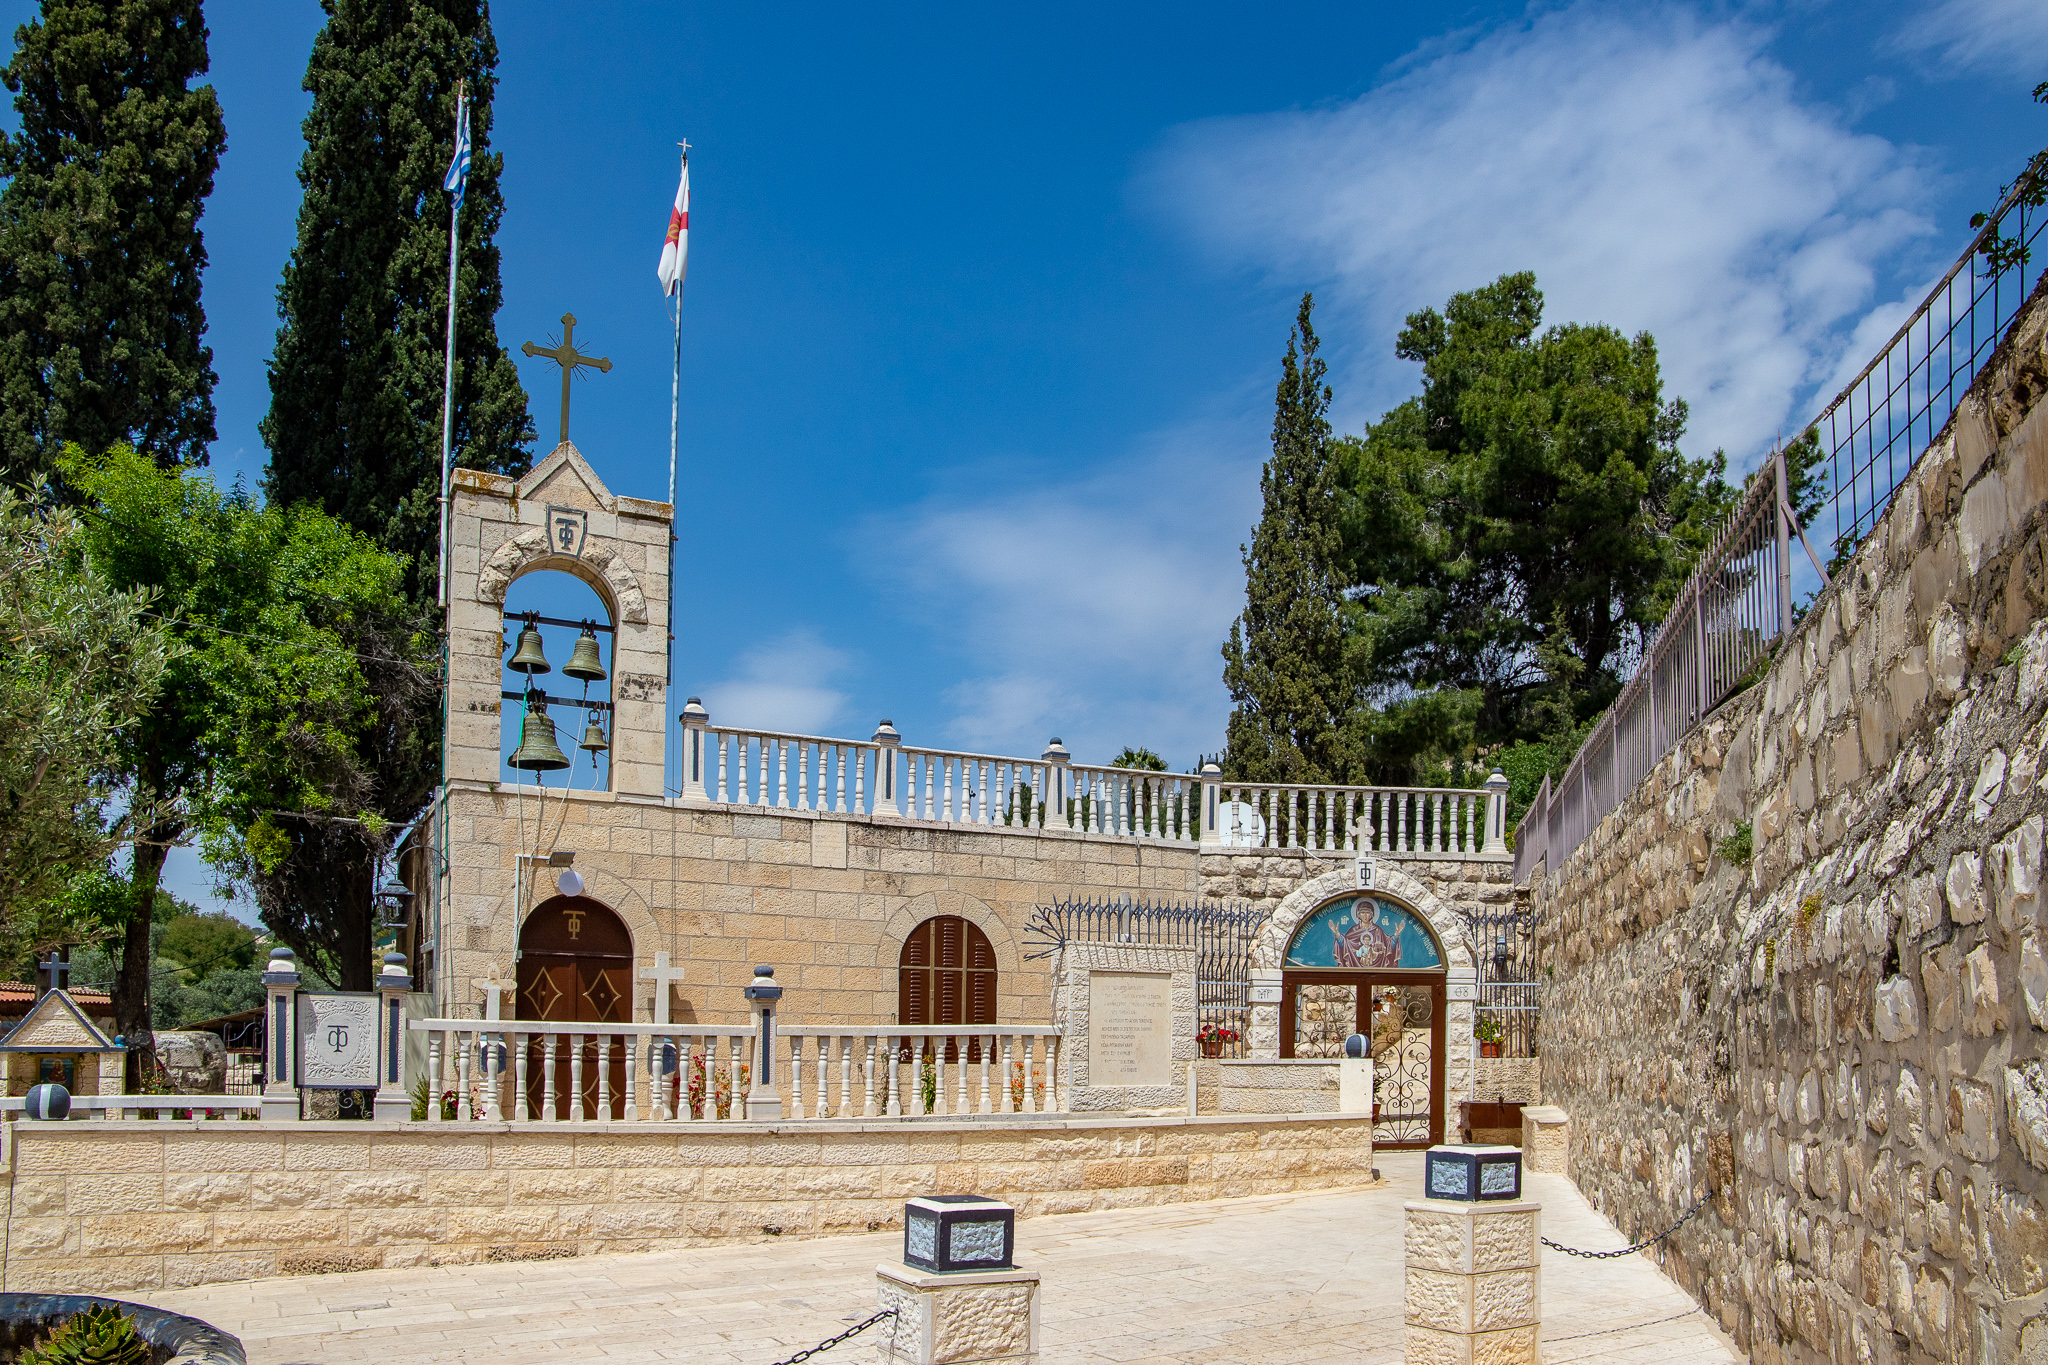 The pretty Abbey of Saint Mary of the Valley of Jehoshaphat, which sits beside the Tomb of the Virgin